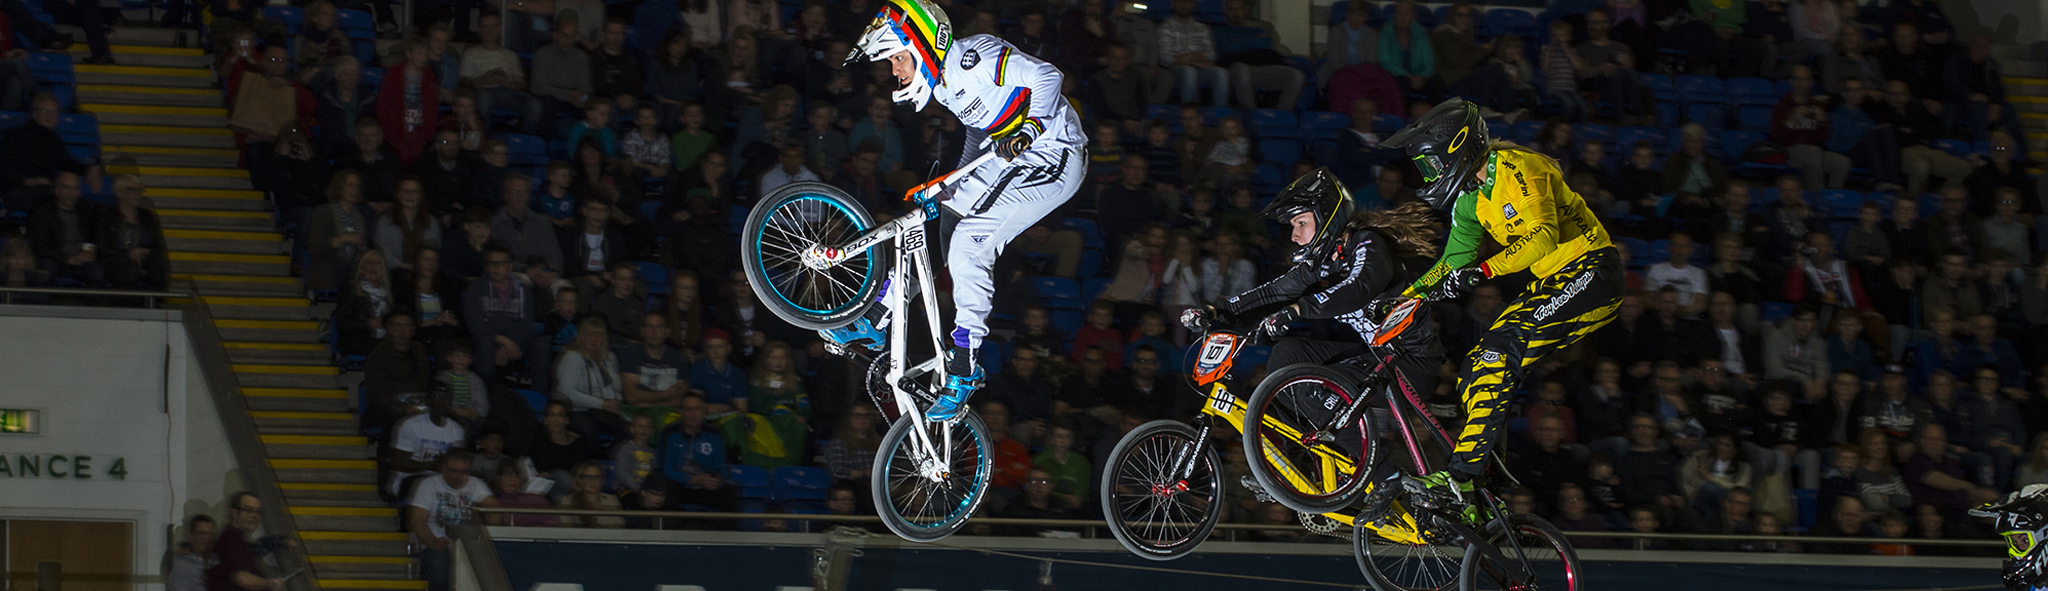 Chase BMX Race Report – UCI BMX World Cup #2 – Manchester, UK